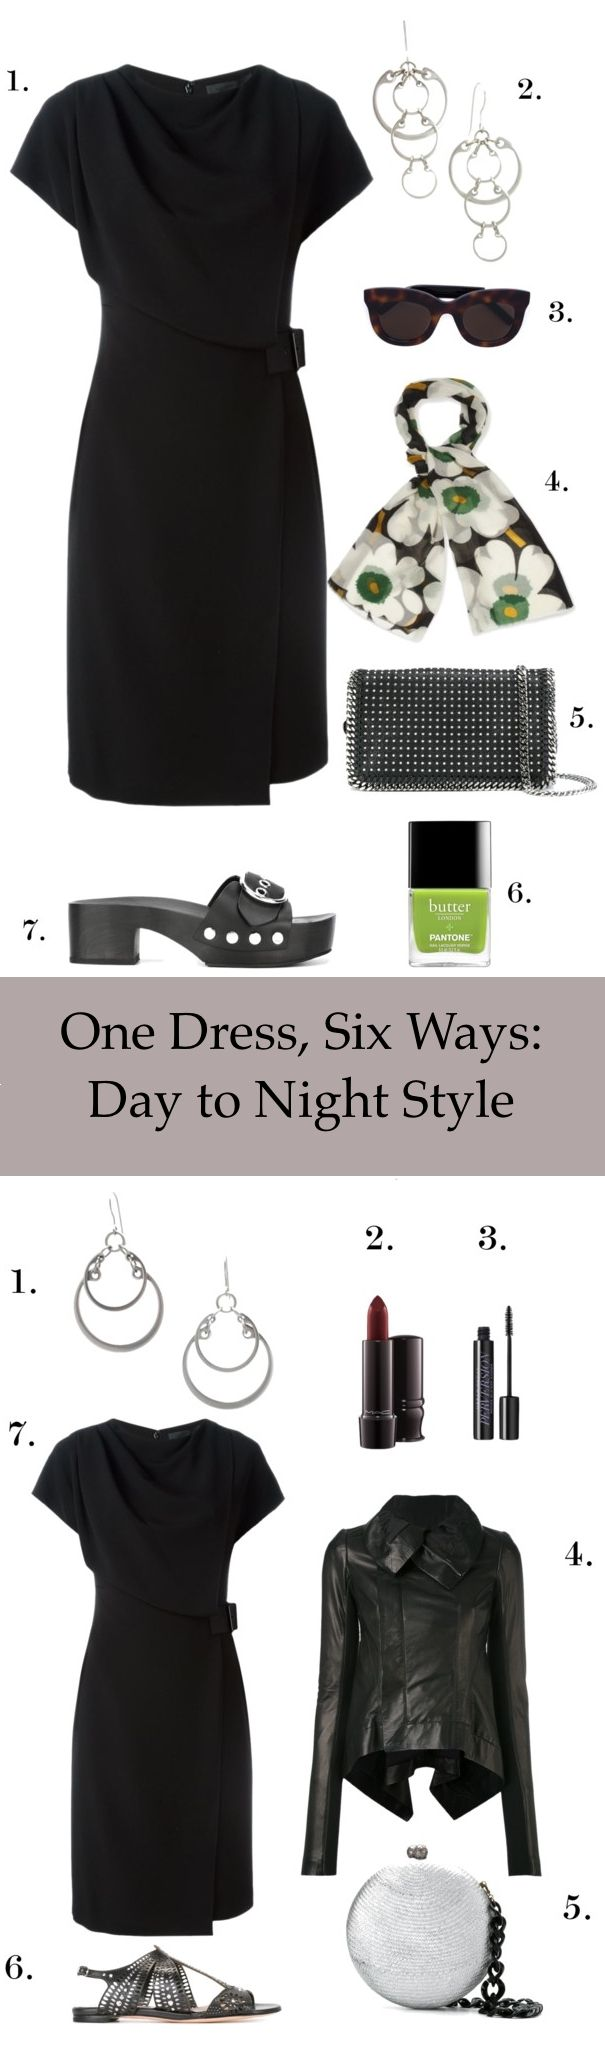 One little black dress, six ways: day to night style | When I'm extra-busy but don't want to sacrifice my style, I opt for  classic basics with fun, seasonally appropriate accessories that are  modern, eclectic, and edgy. These six styling ideas for one classic  little black dress will easily take you from day to night, from the  office to an evening out! Click to see more!